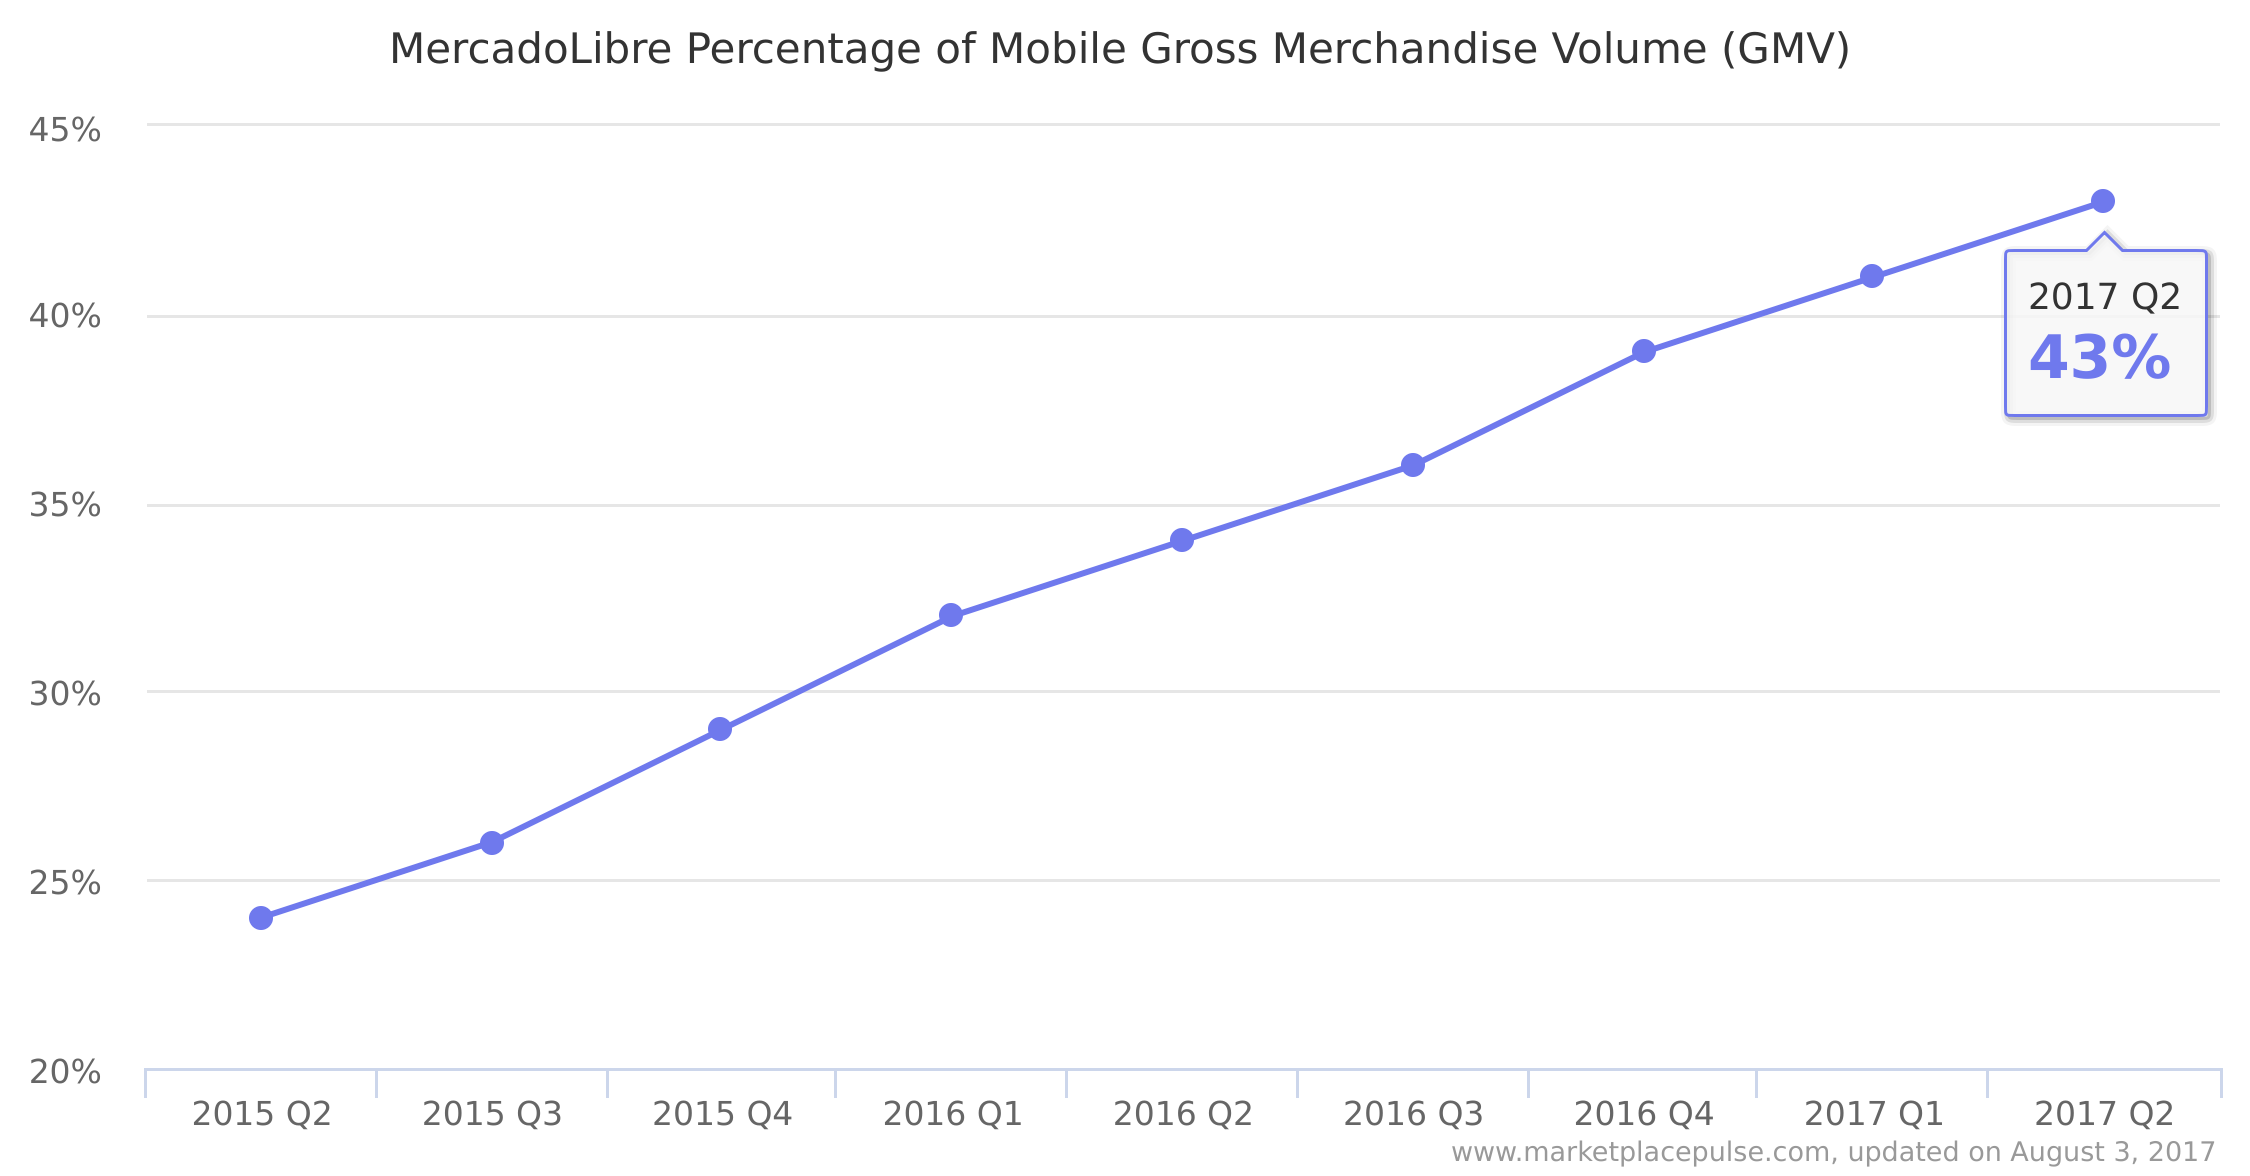 MercadoLibre Percentage of Mobile Gross Merchandise Volume (GMV)